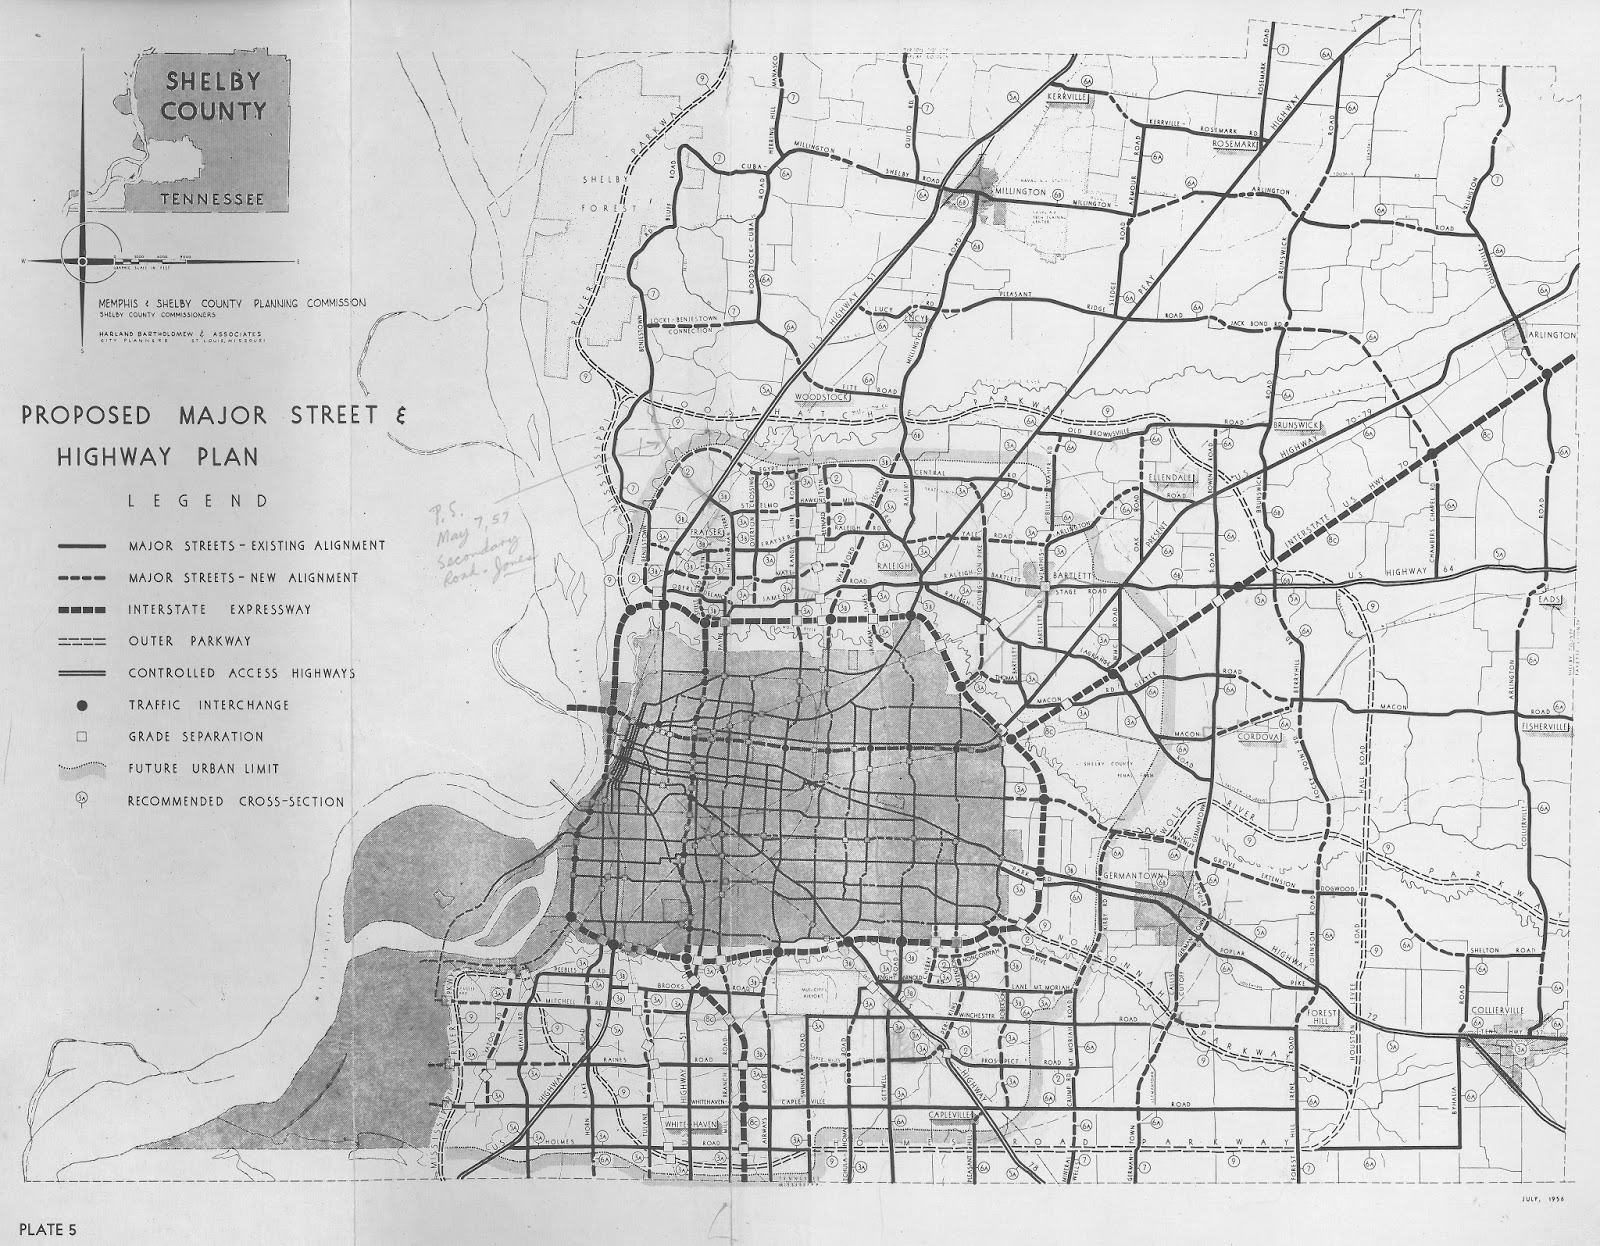 this highway plan from the 1955 comprehensive plan for the city of memphis shows more detailed alignments of the inner and outer expressway loops and the